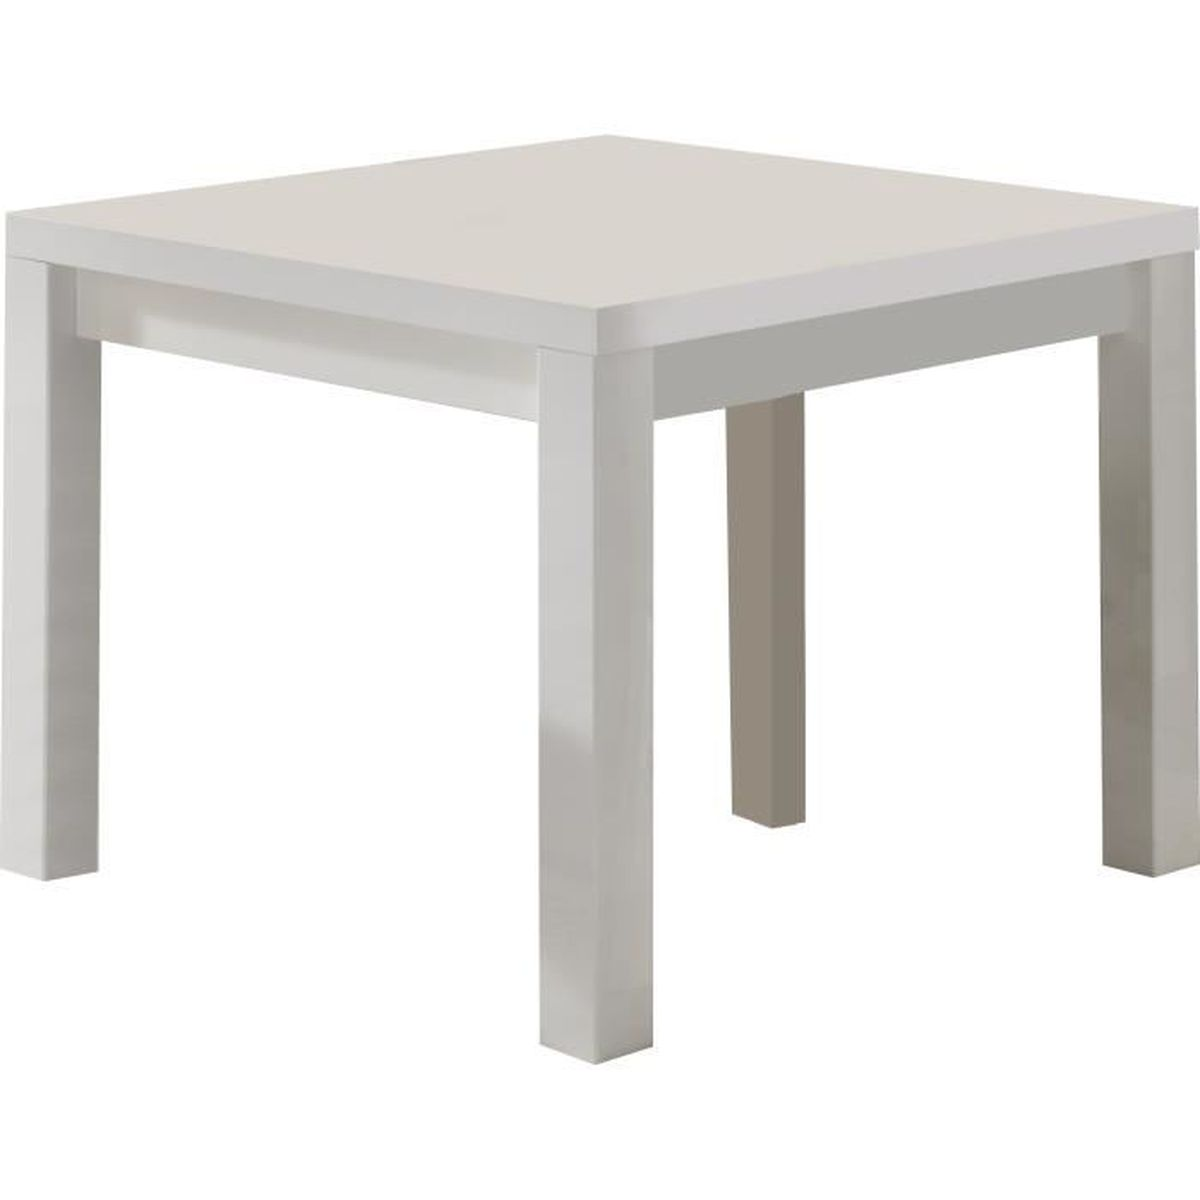 Table manger blanc laqu brillant de forme carr e blanc for Table a manger carre extensible